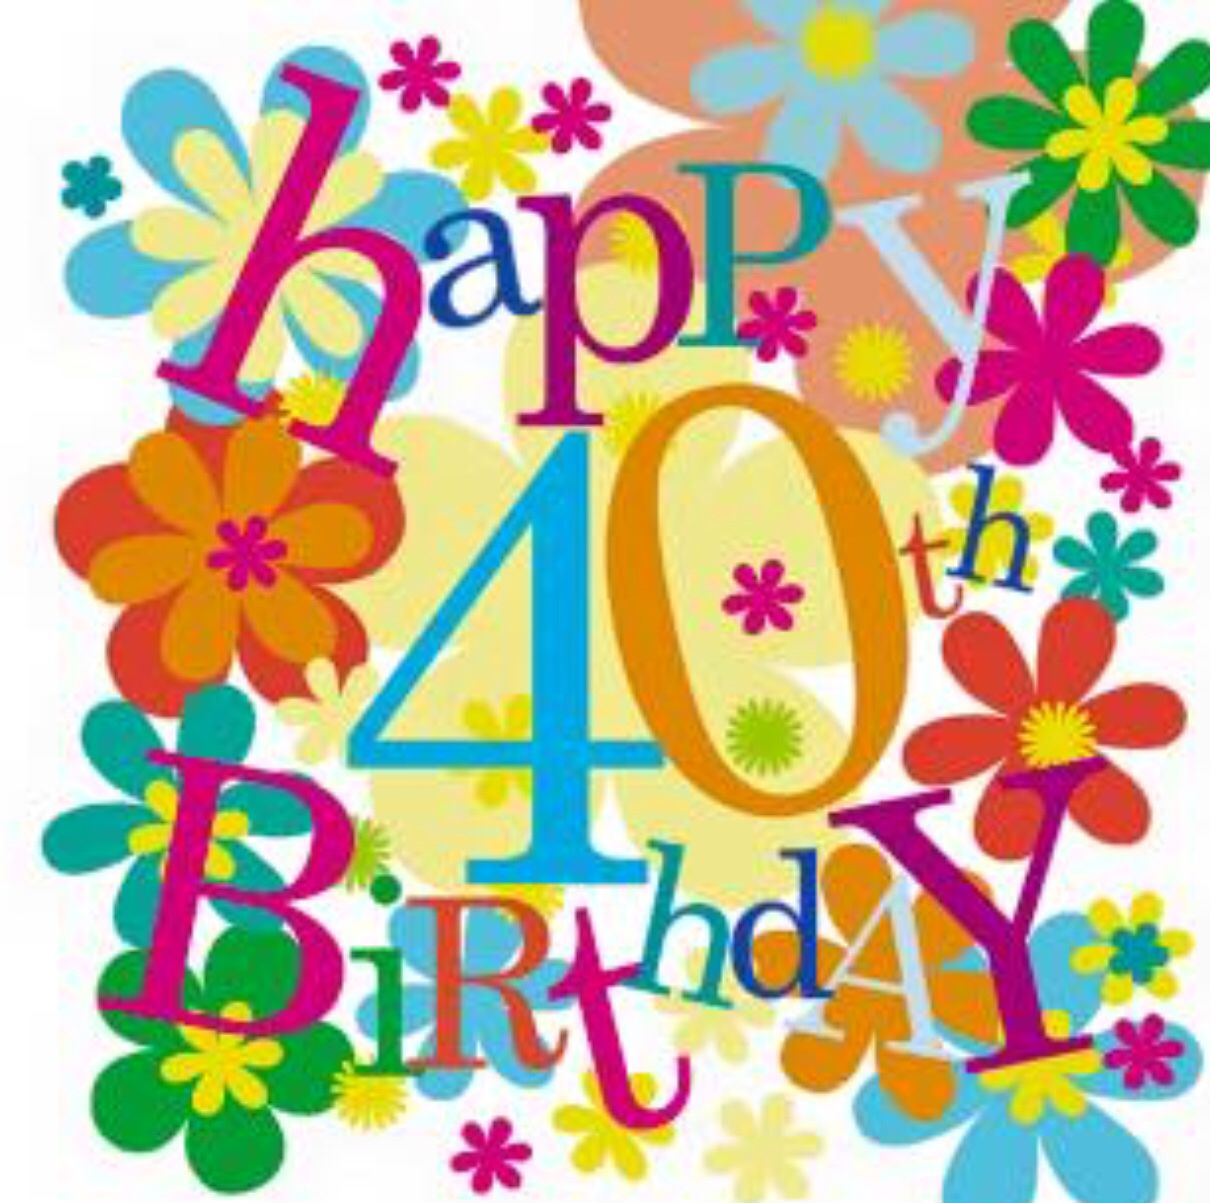 Pin by Cari S on bday 40 40th birthday images, Happy